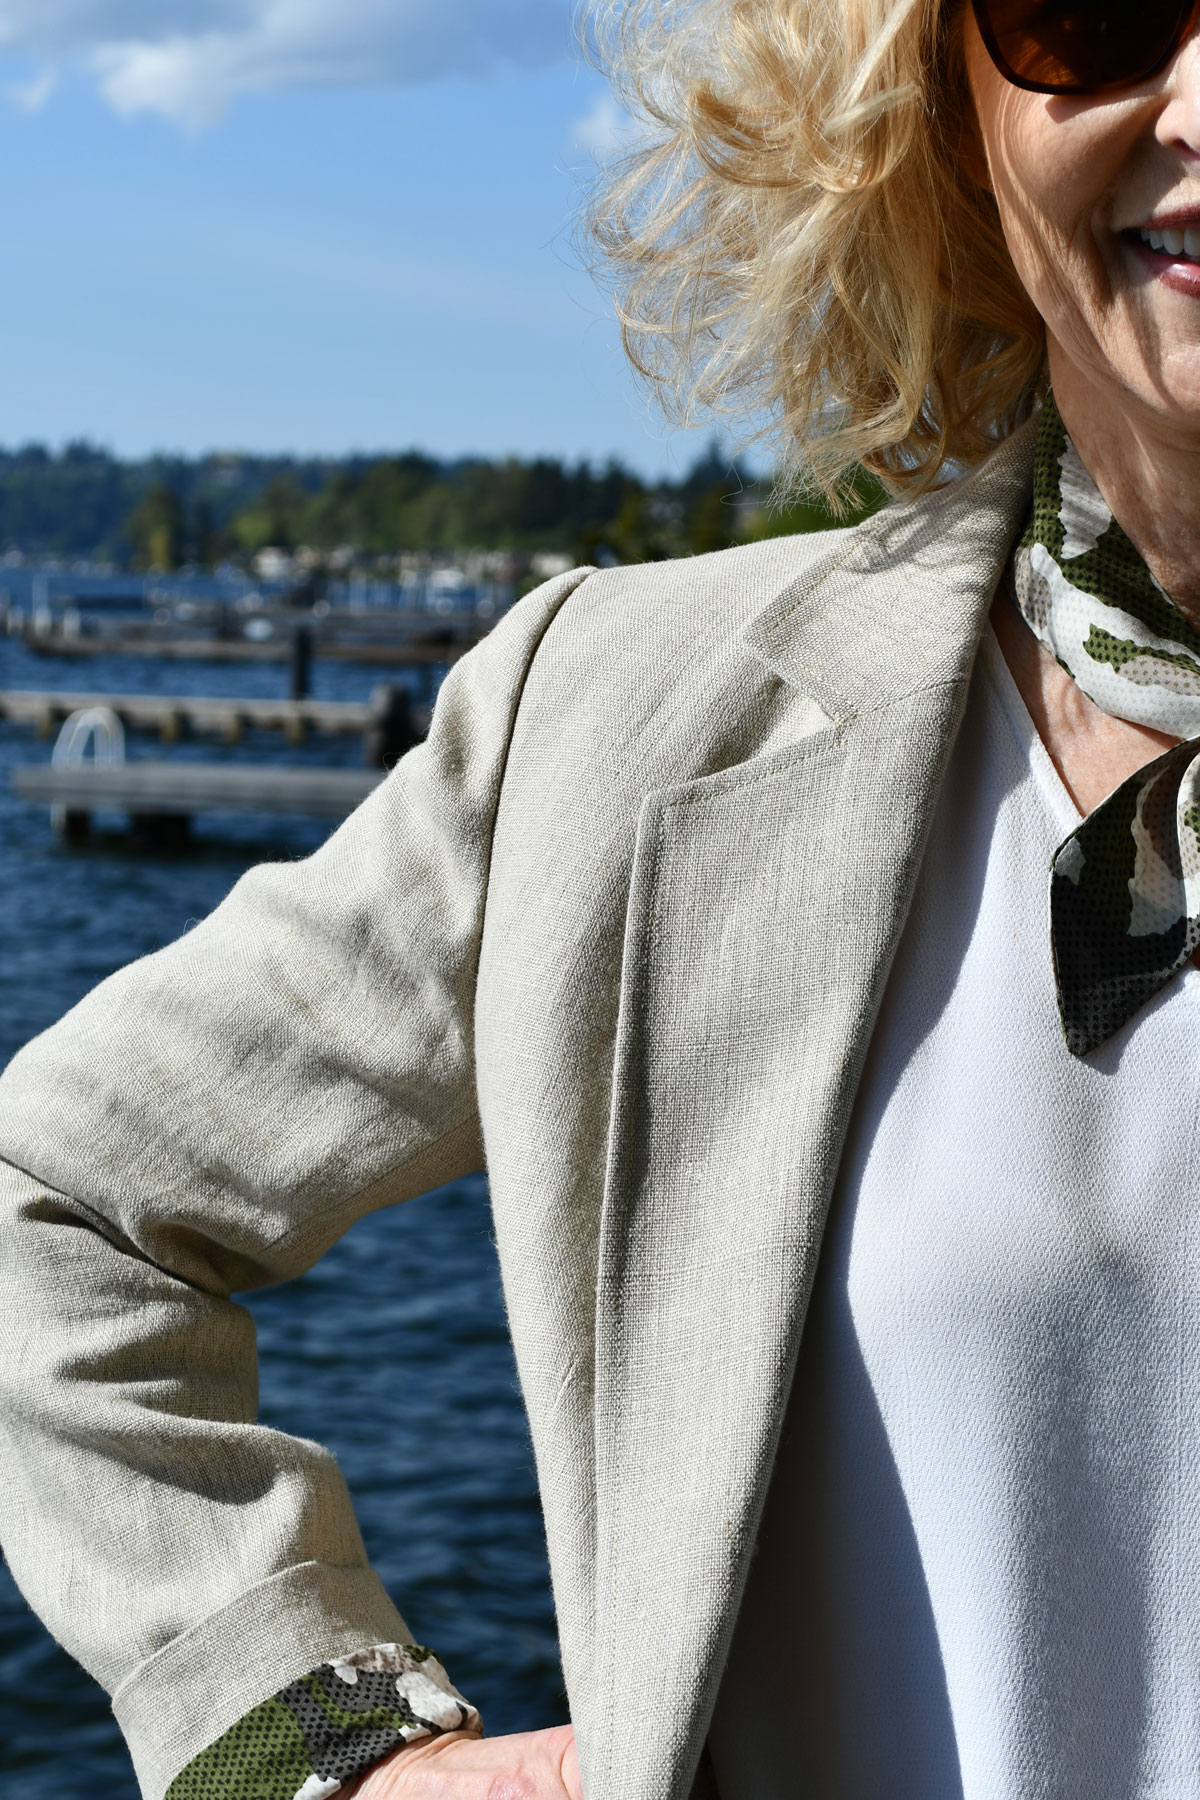 Linen Jasika Blazer lapel and sleeve detail.